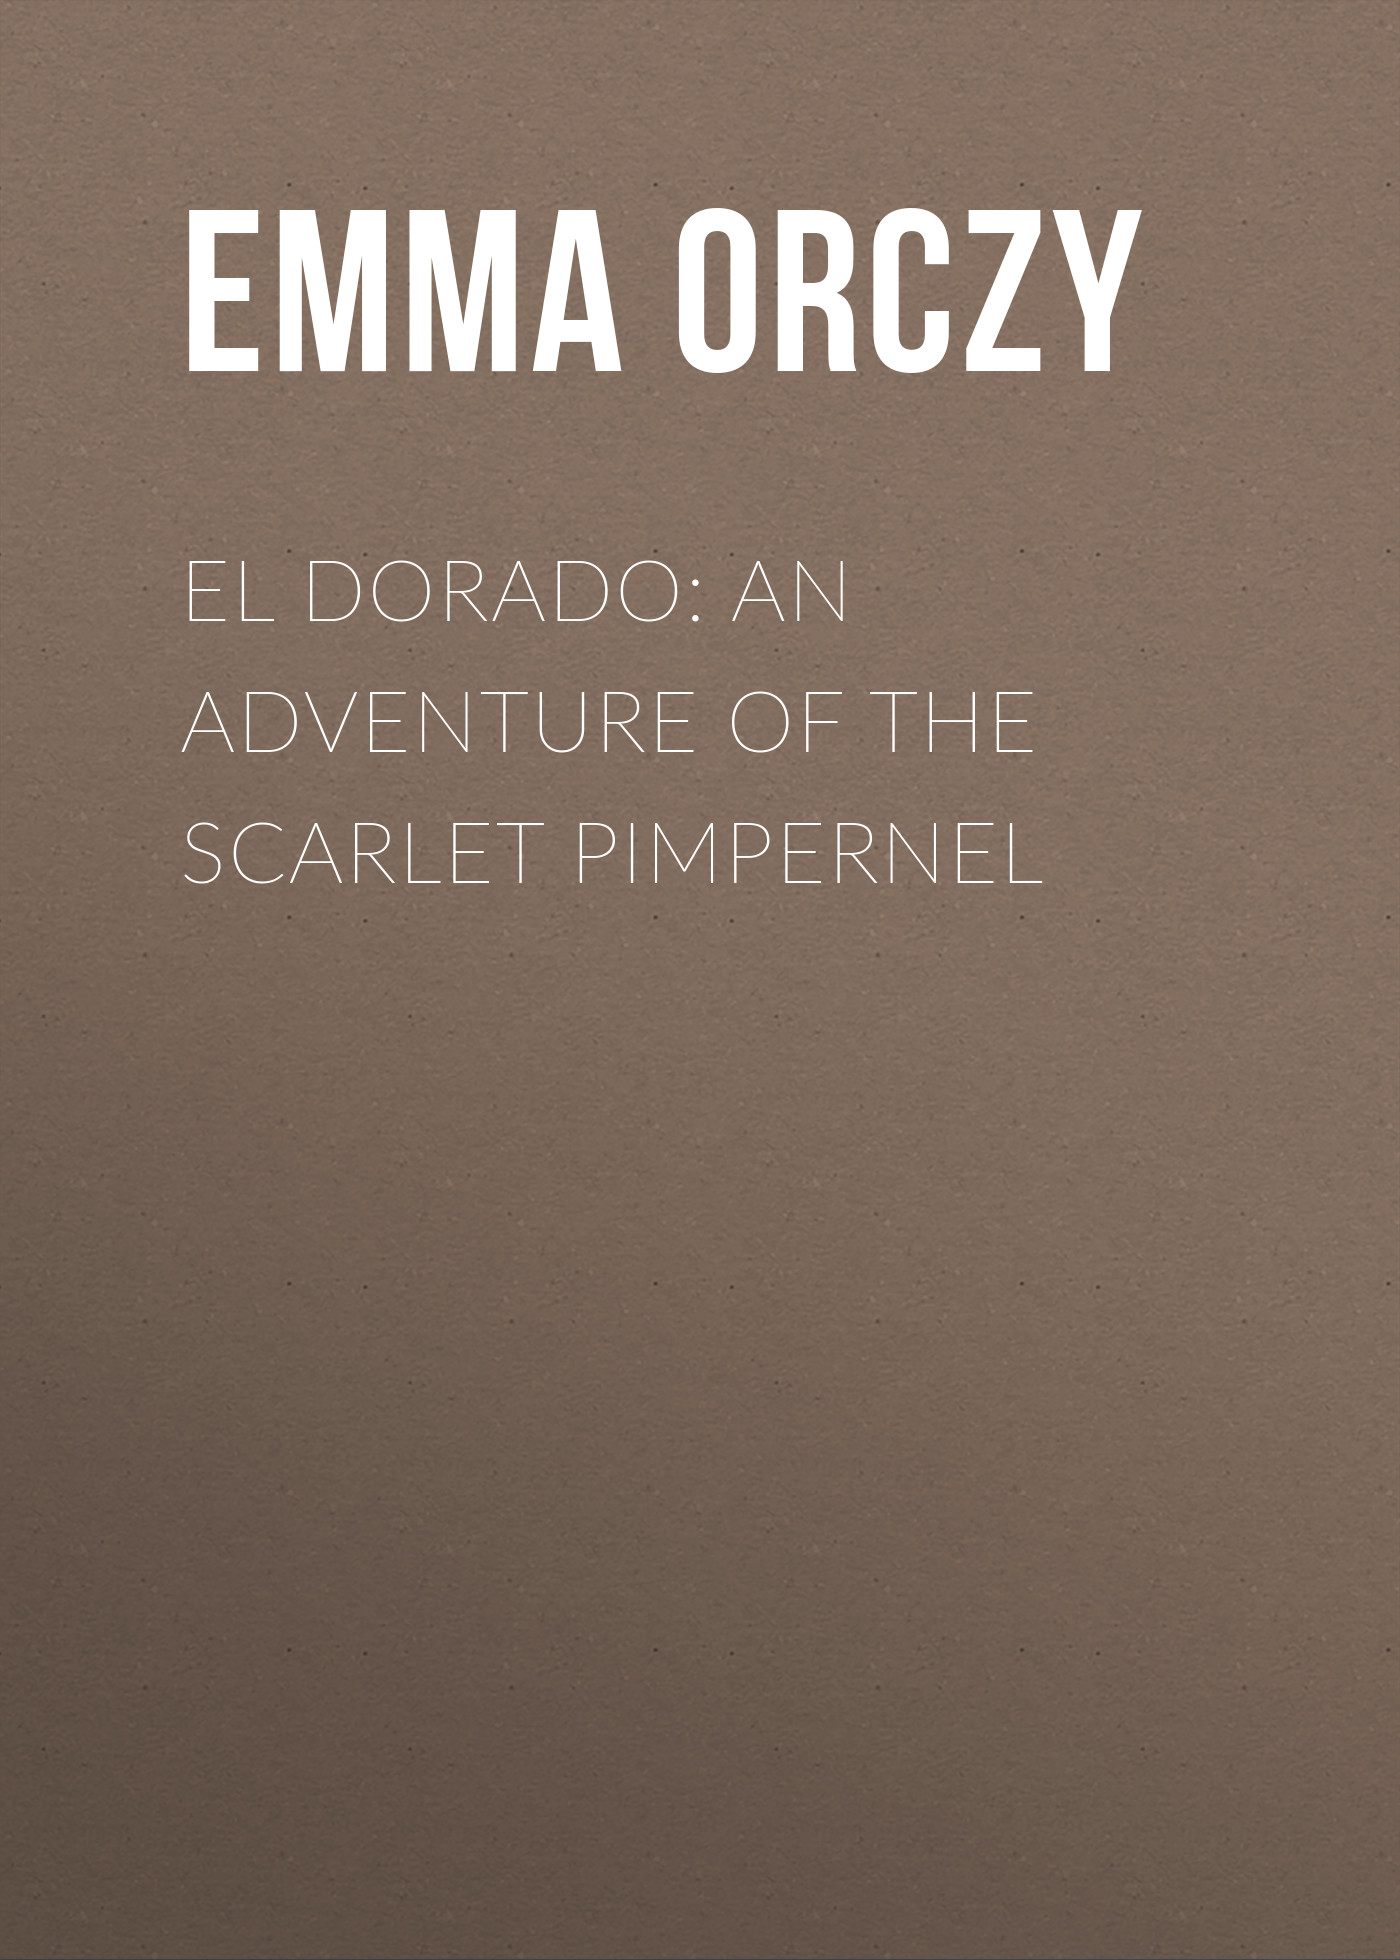 купить Emma Orczy El Dorado: An Adventure of the Scarlet Pimpernel по цене 0 рублей